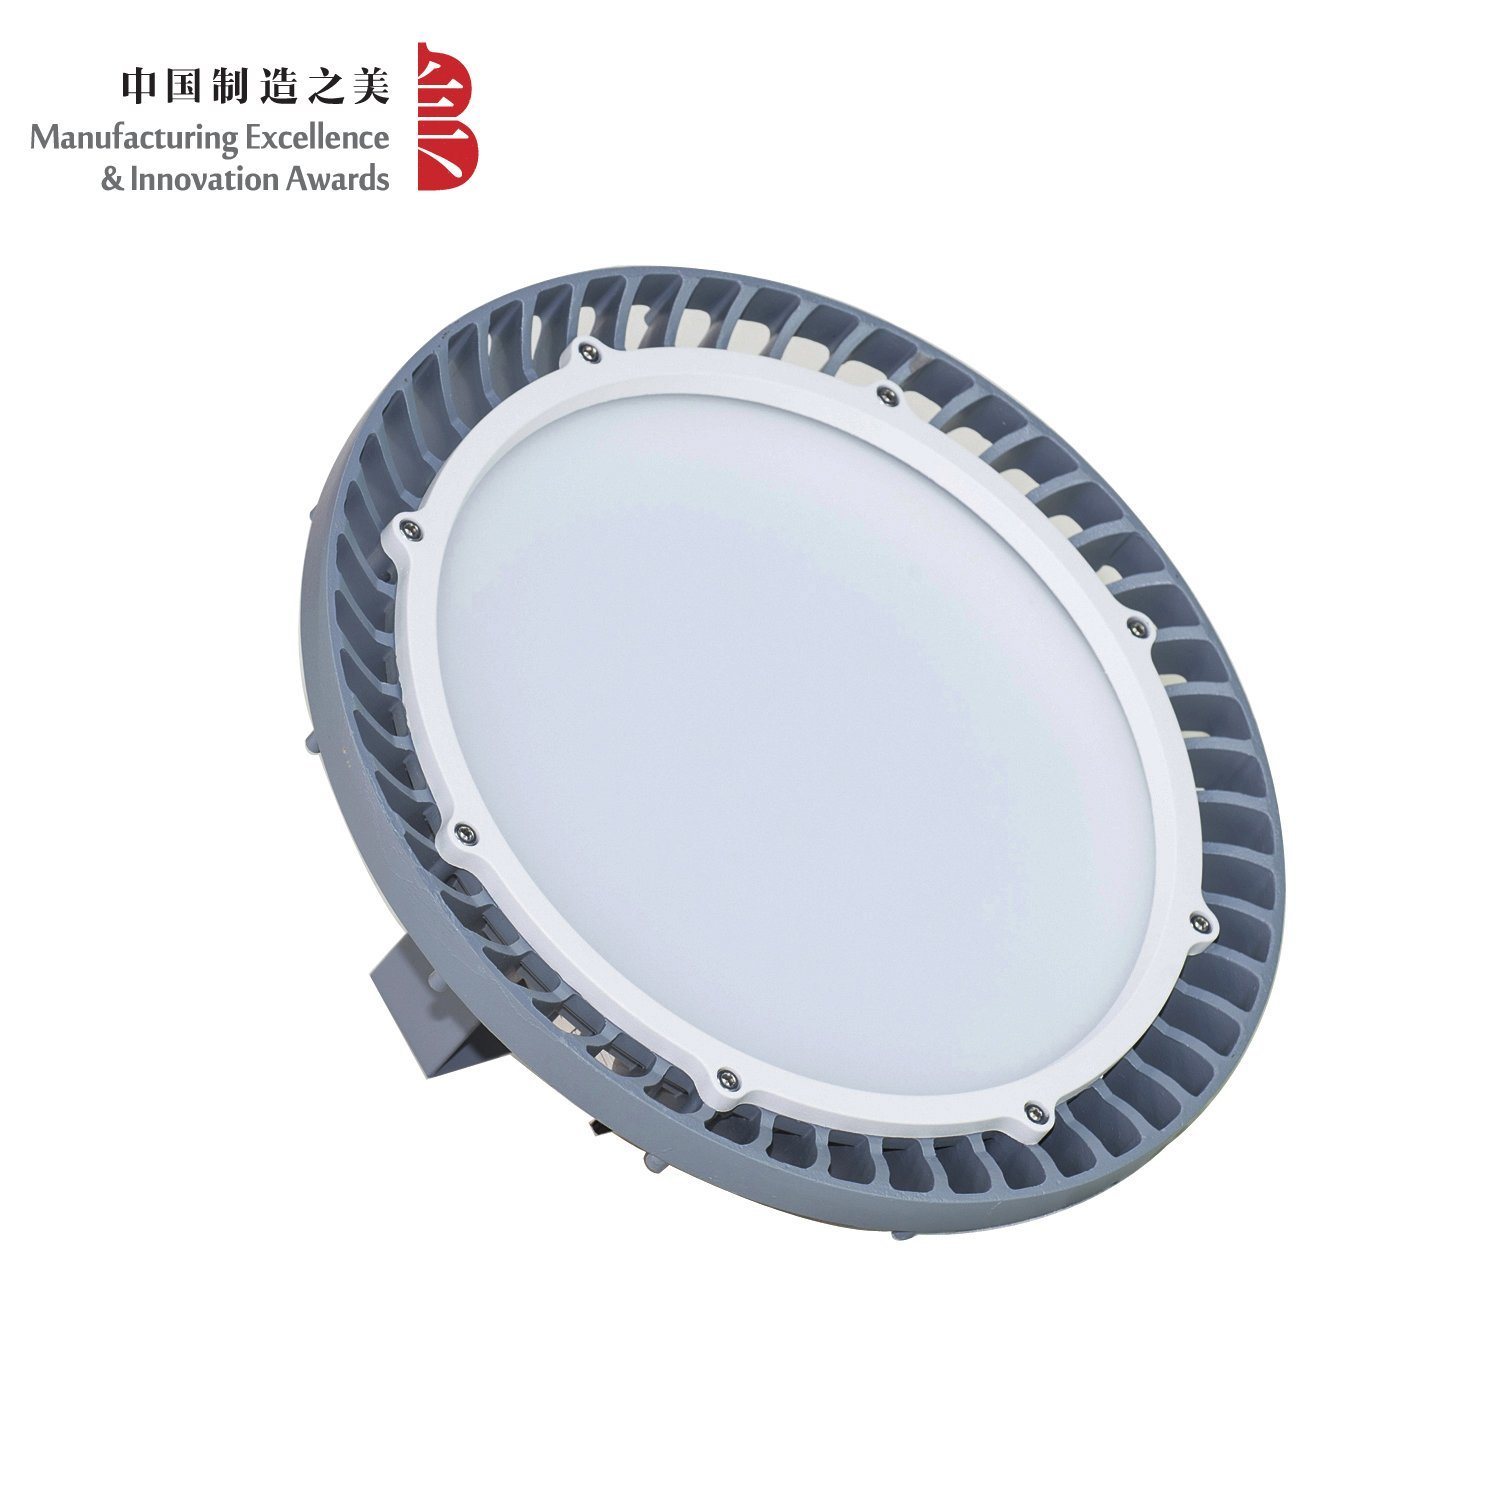 90W Outdoor LED High Bay Light (Bfz 220/90 Xx E)